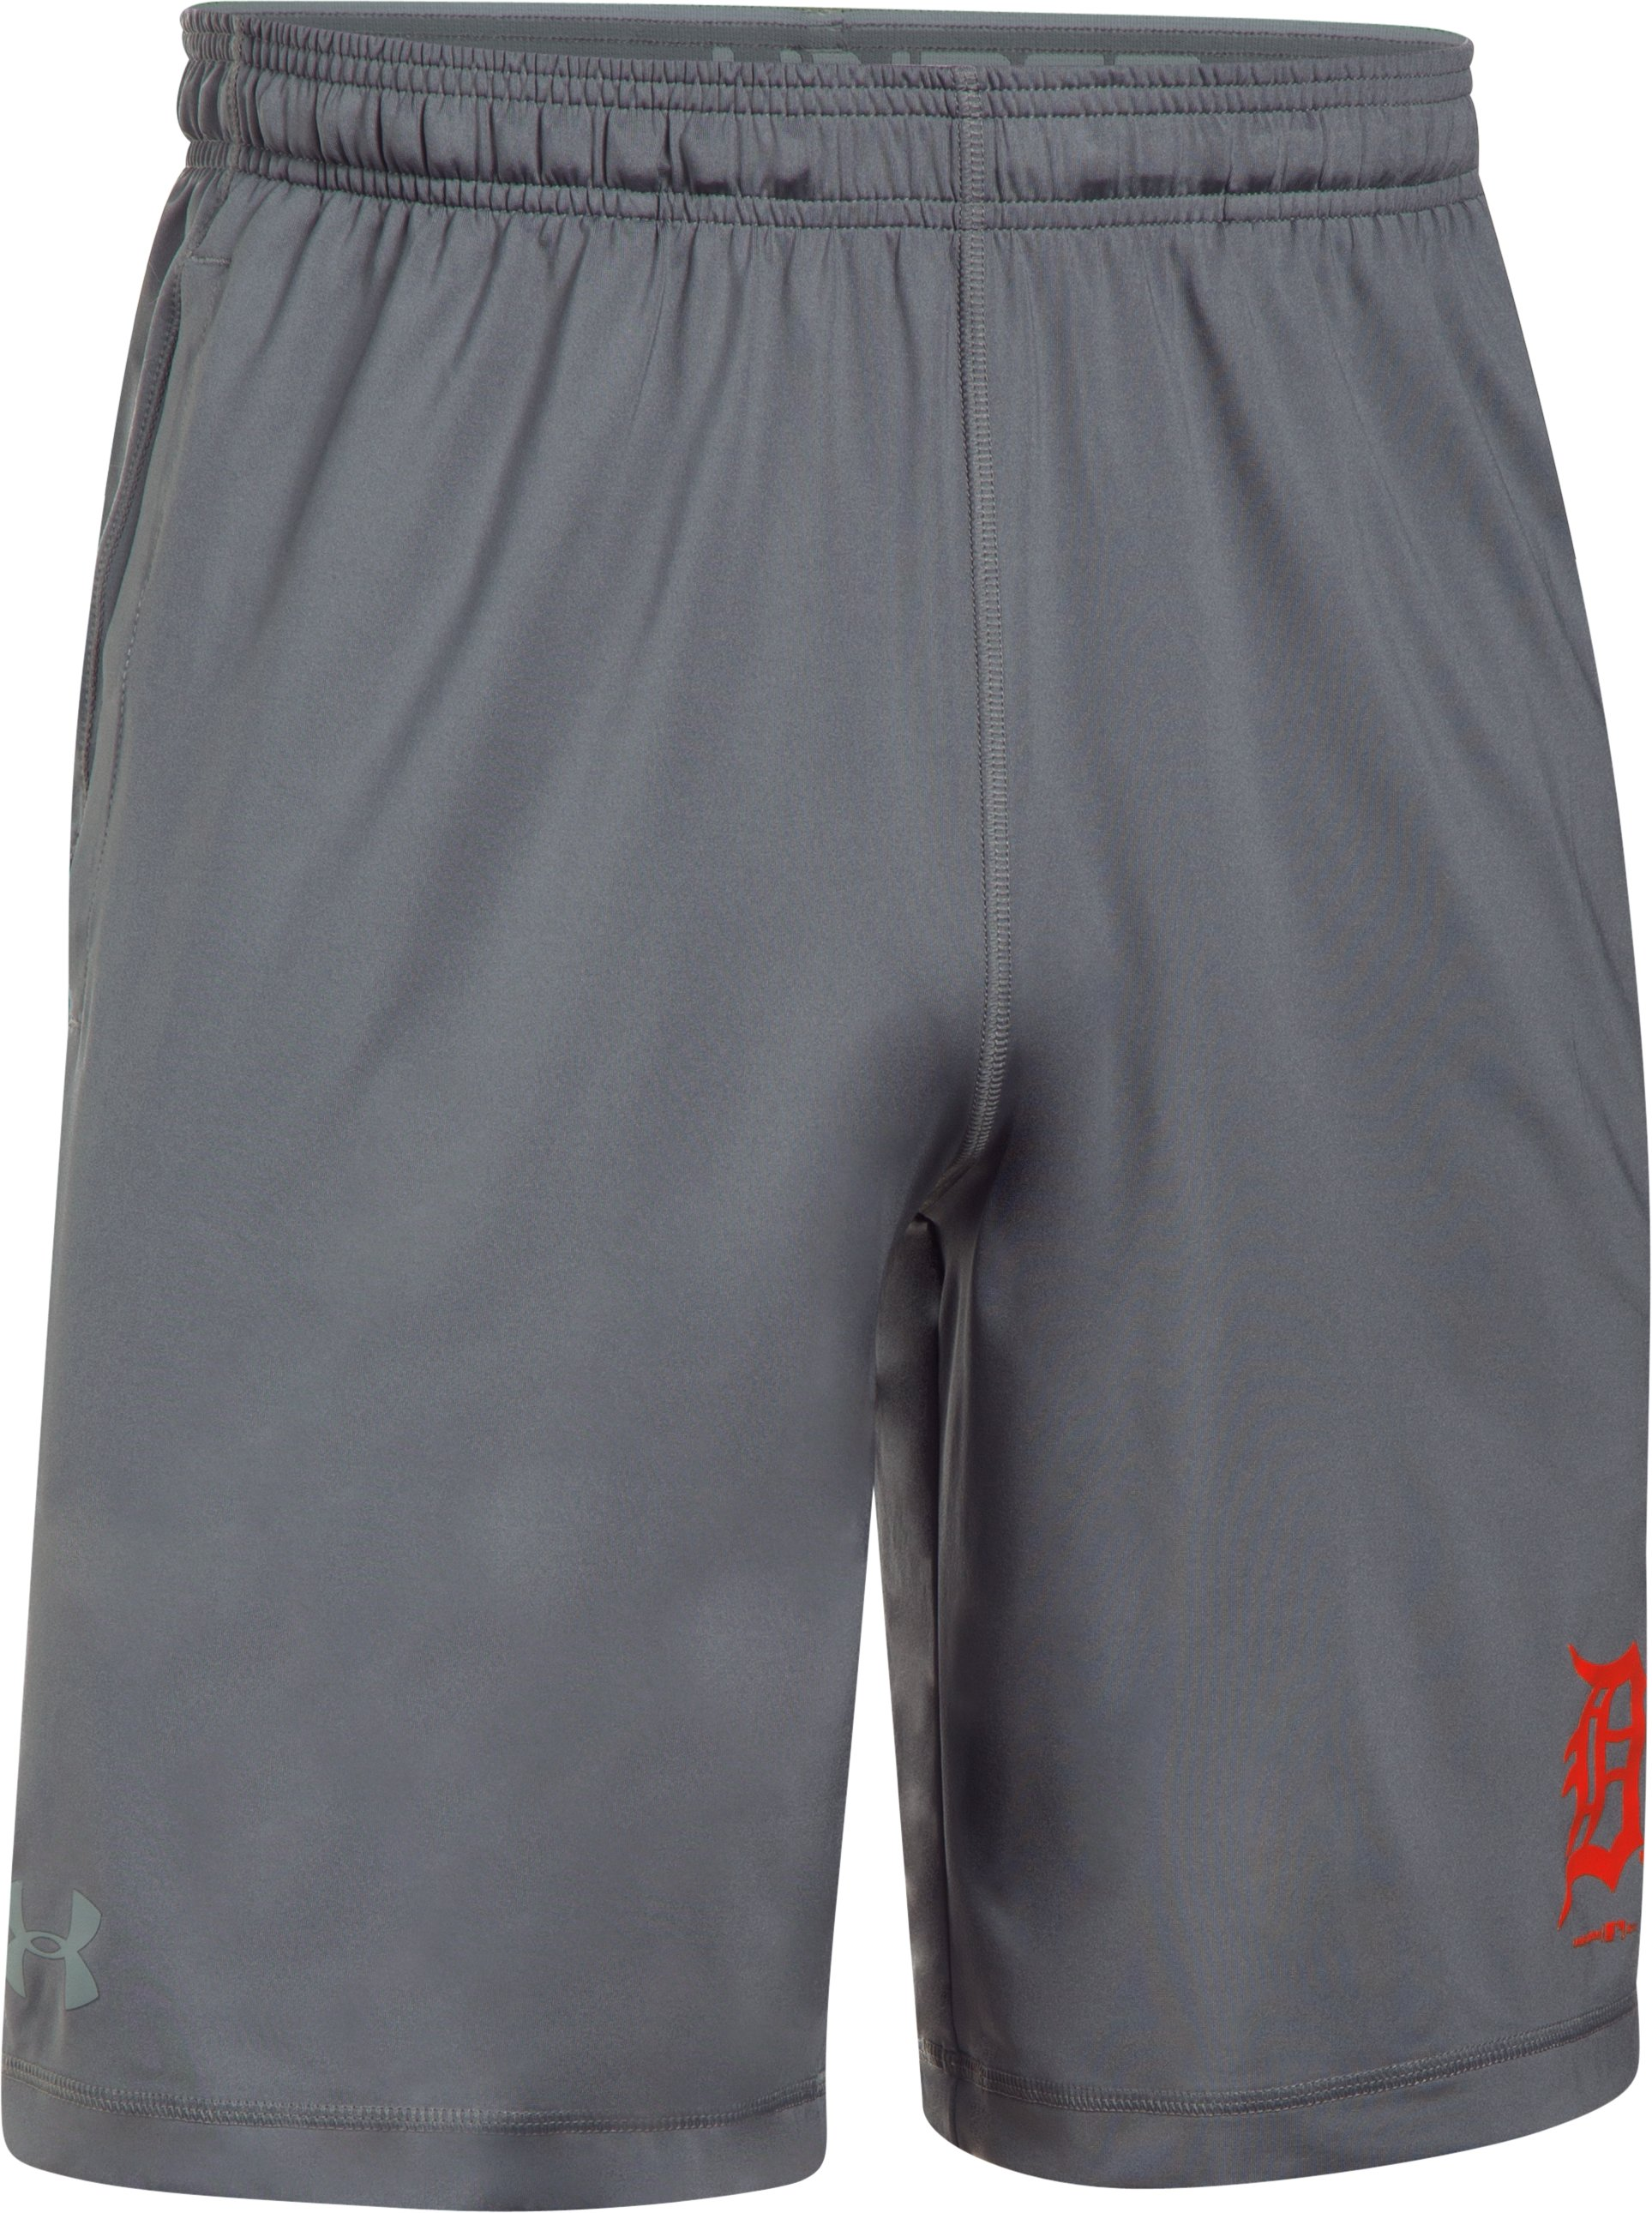 Men's Detroit Tigers UA Raid Shorts, Graphite, undefined